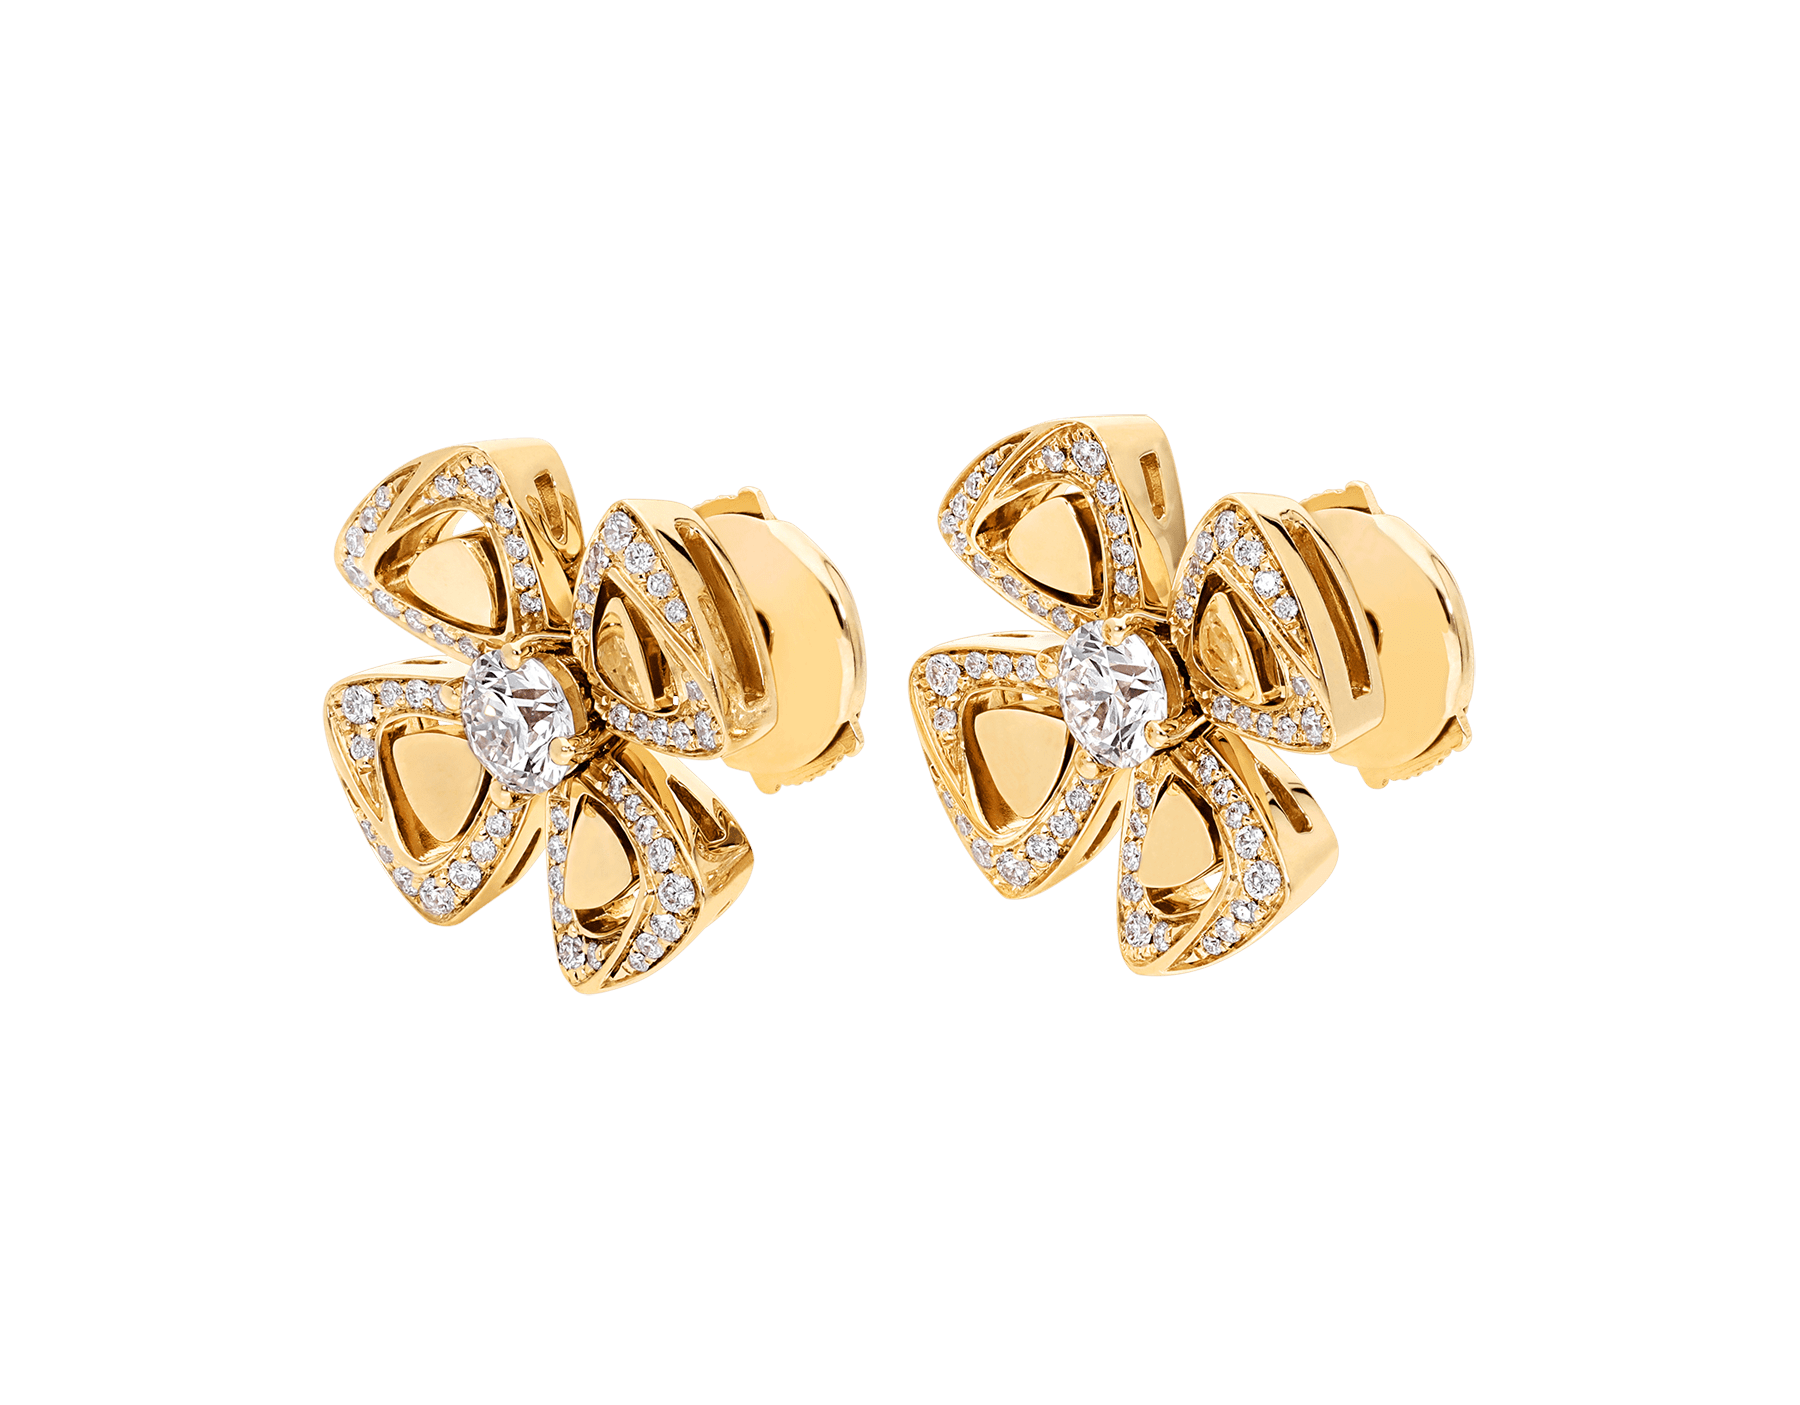 Fiorever 18 kt yellow gold stud earrings, set with two central diamonds and pavé diamonds. 357500 image 2